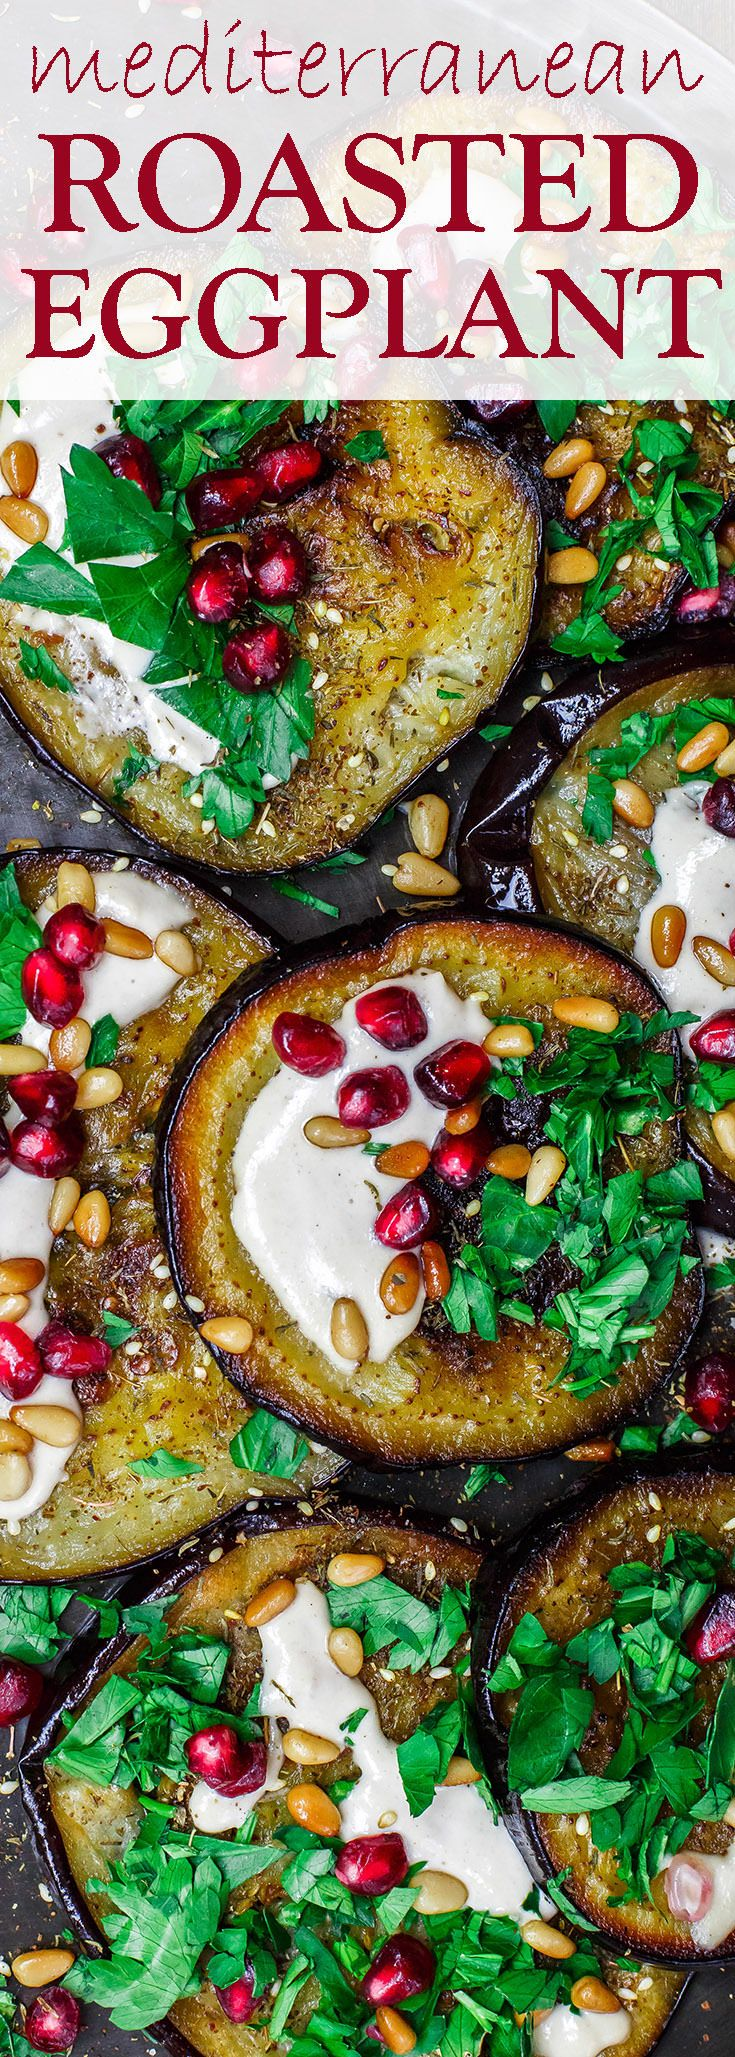 Mediterranean Roasted Eggplant Recipe | The Mediterranean Dish. An easy roasted eggplant recipe, prepared Mediterranean-style with pomegranates, tahini and fresh parsley. Great as an appetizer, salad, or side dish! See it on TheMediterraneanDish.com